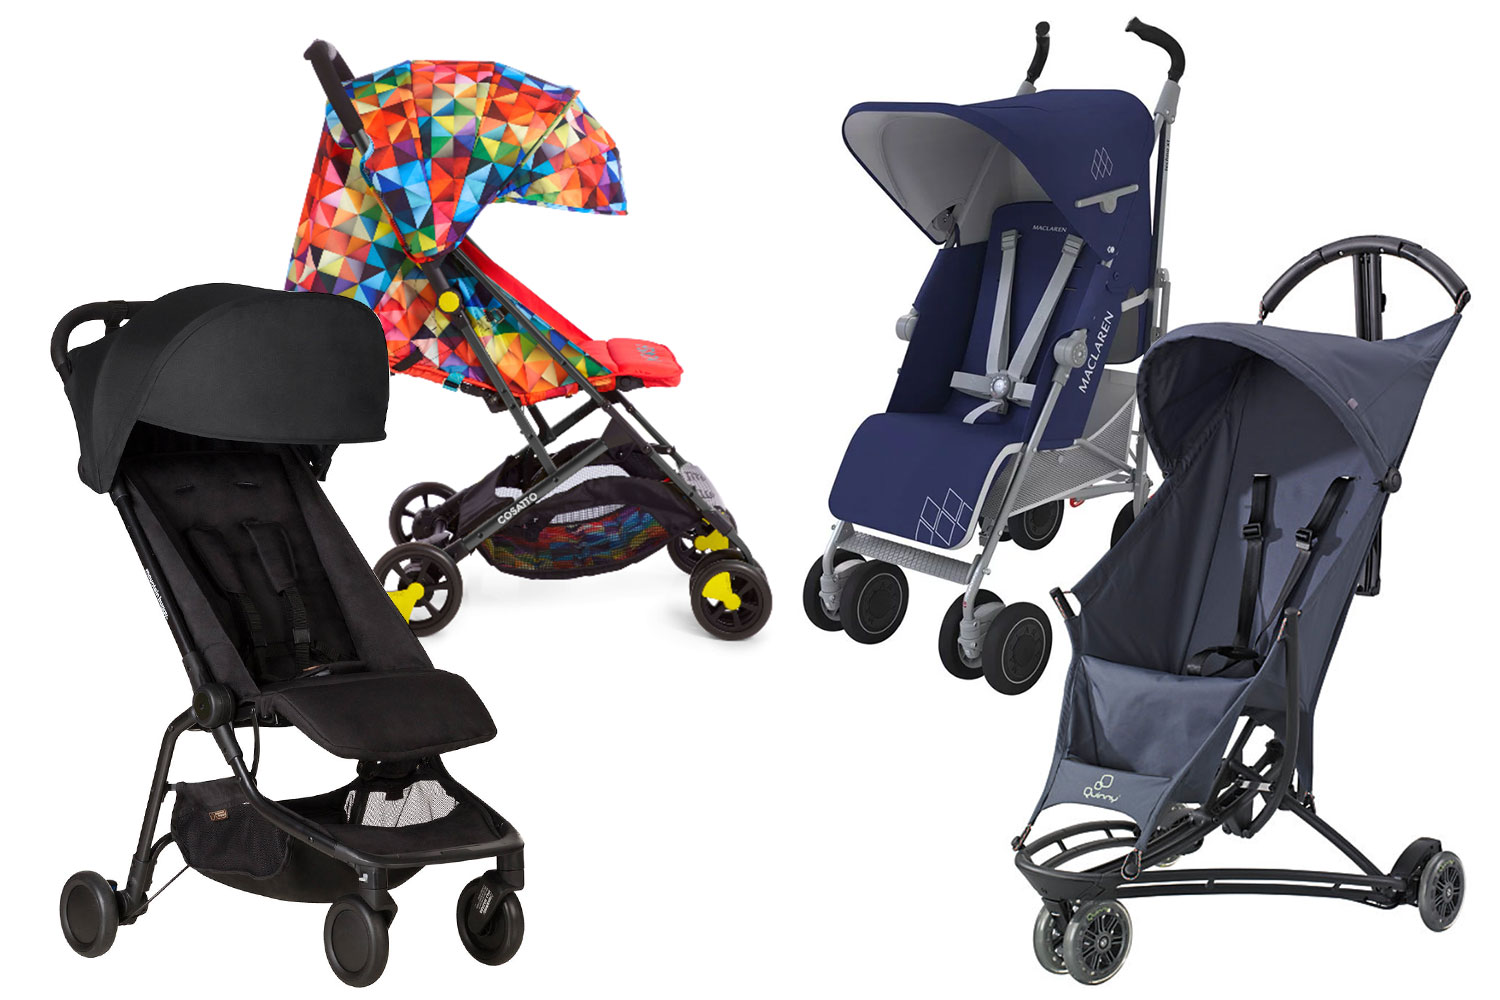 Maclaren Stroller Uk Reviews Best Strollers 2019 The Sun Uk